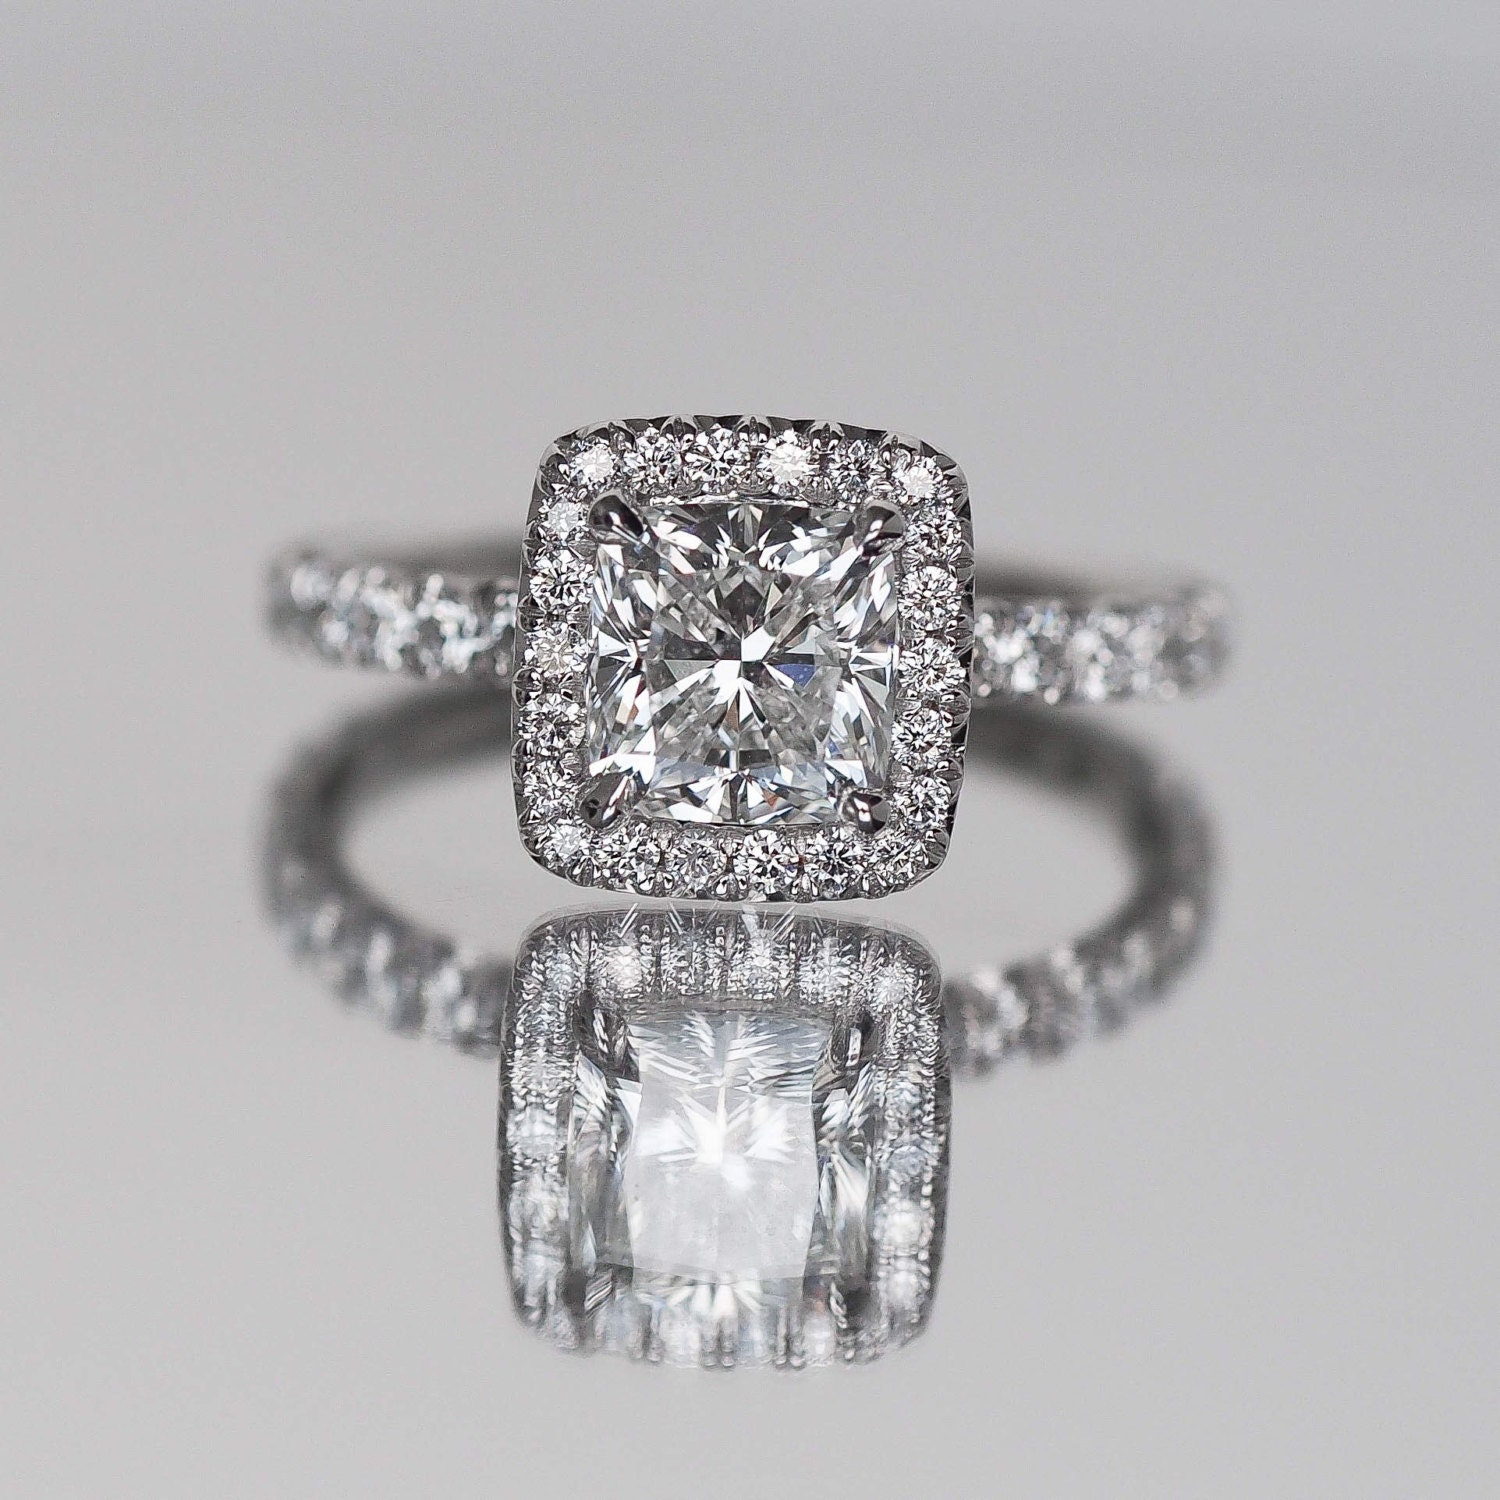 cusion certificated cushion diamond ring approximately platinum cut solitaire